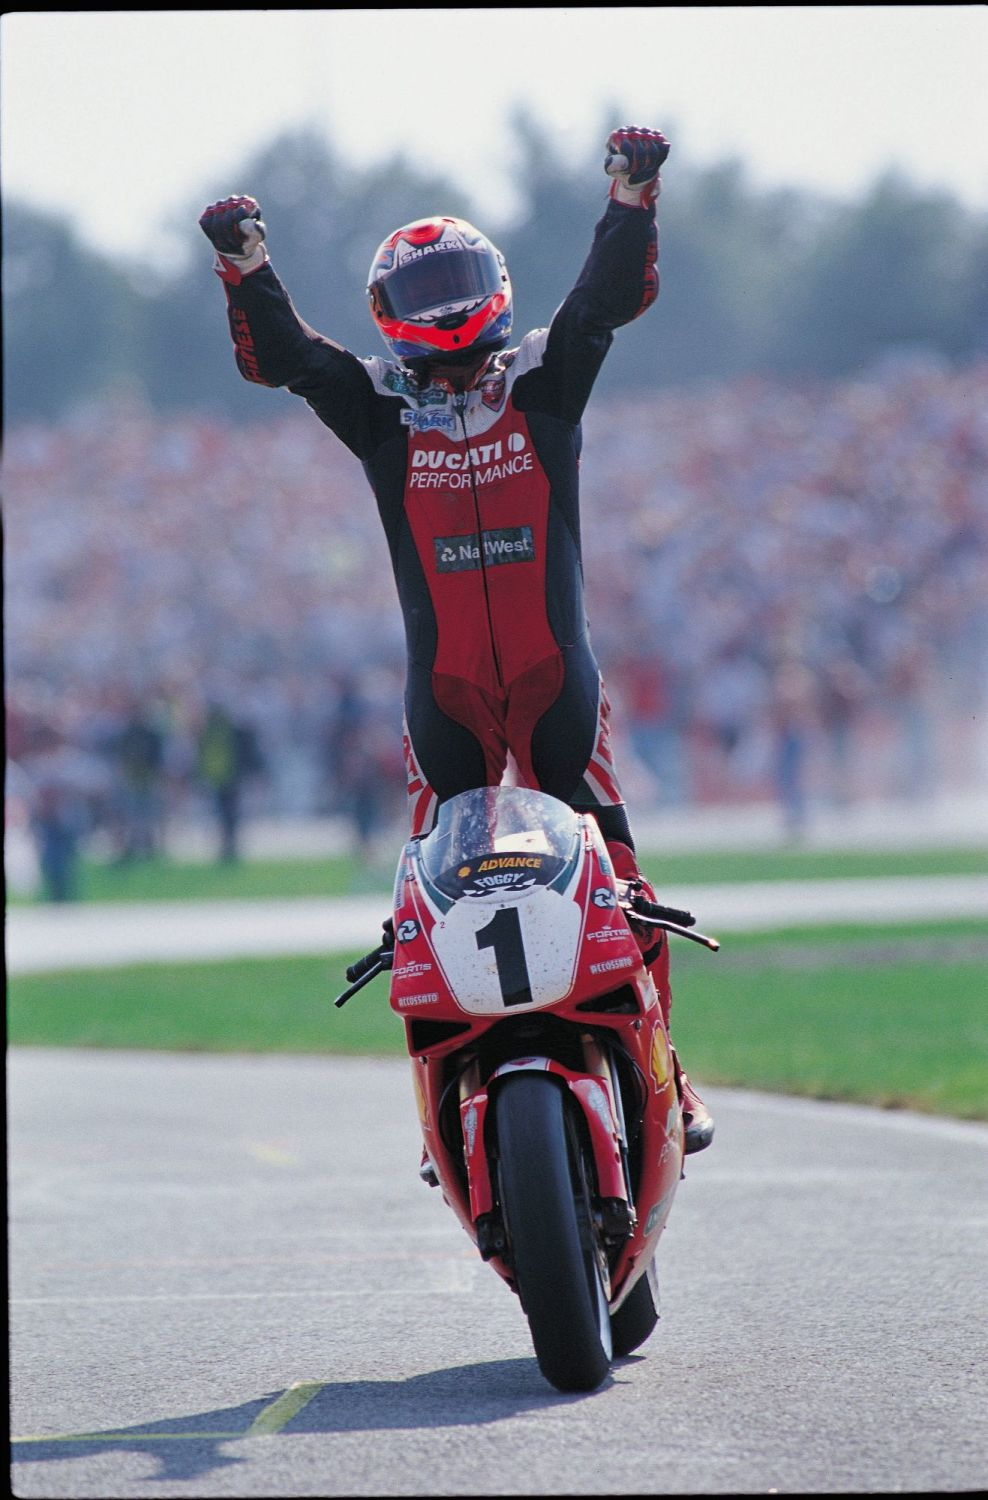 Carl Fogarty 10x8 Signed Photograph:  A : Sportsmania Autograph  Pre order.